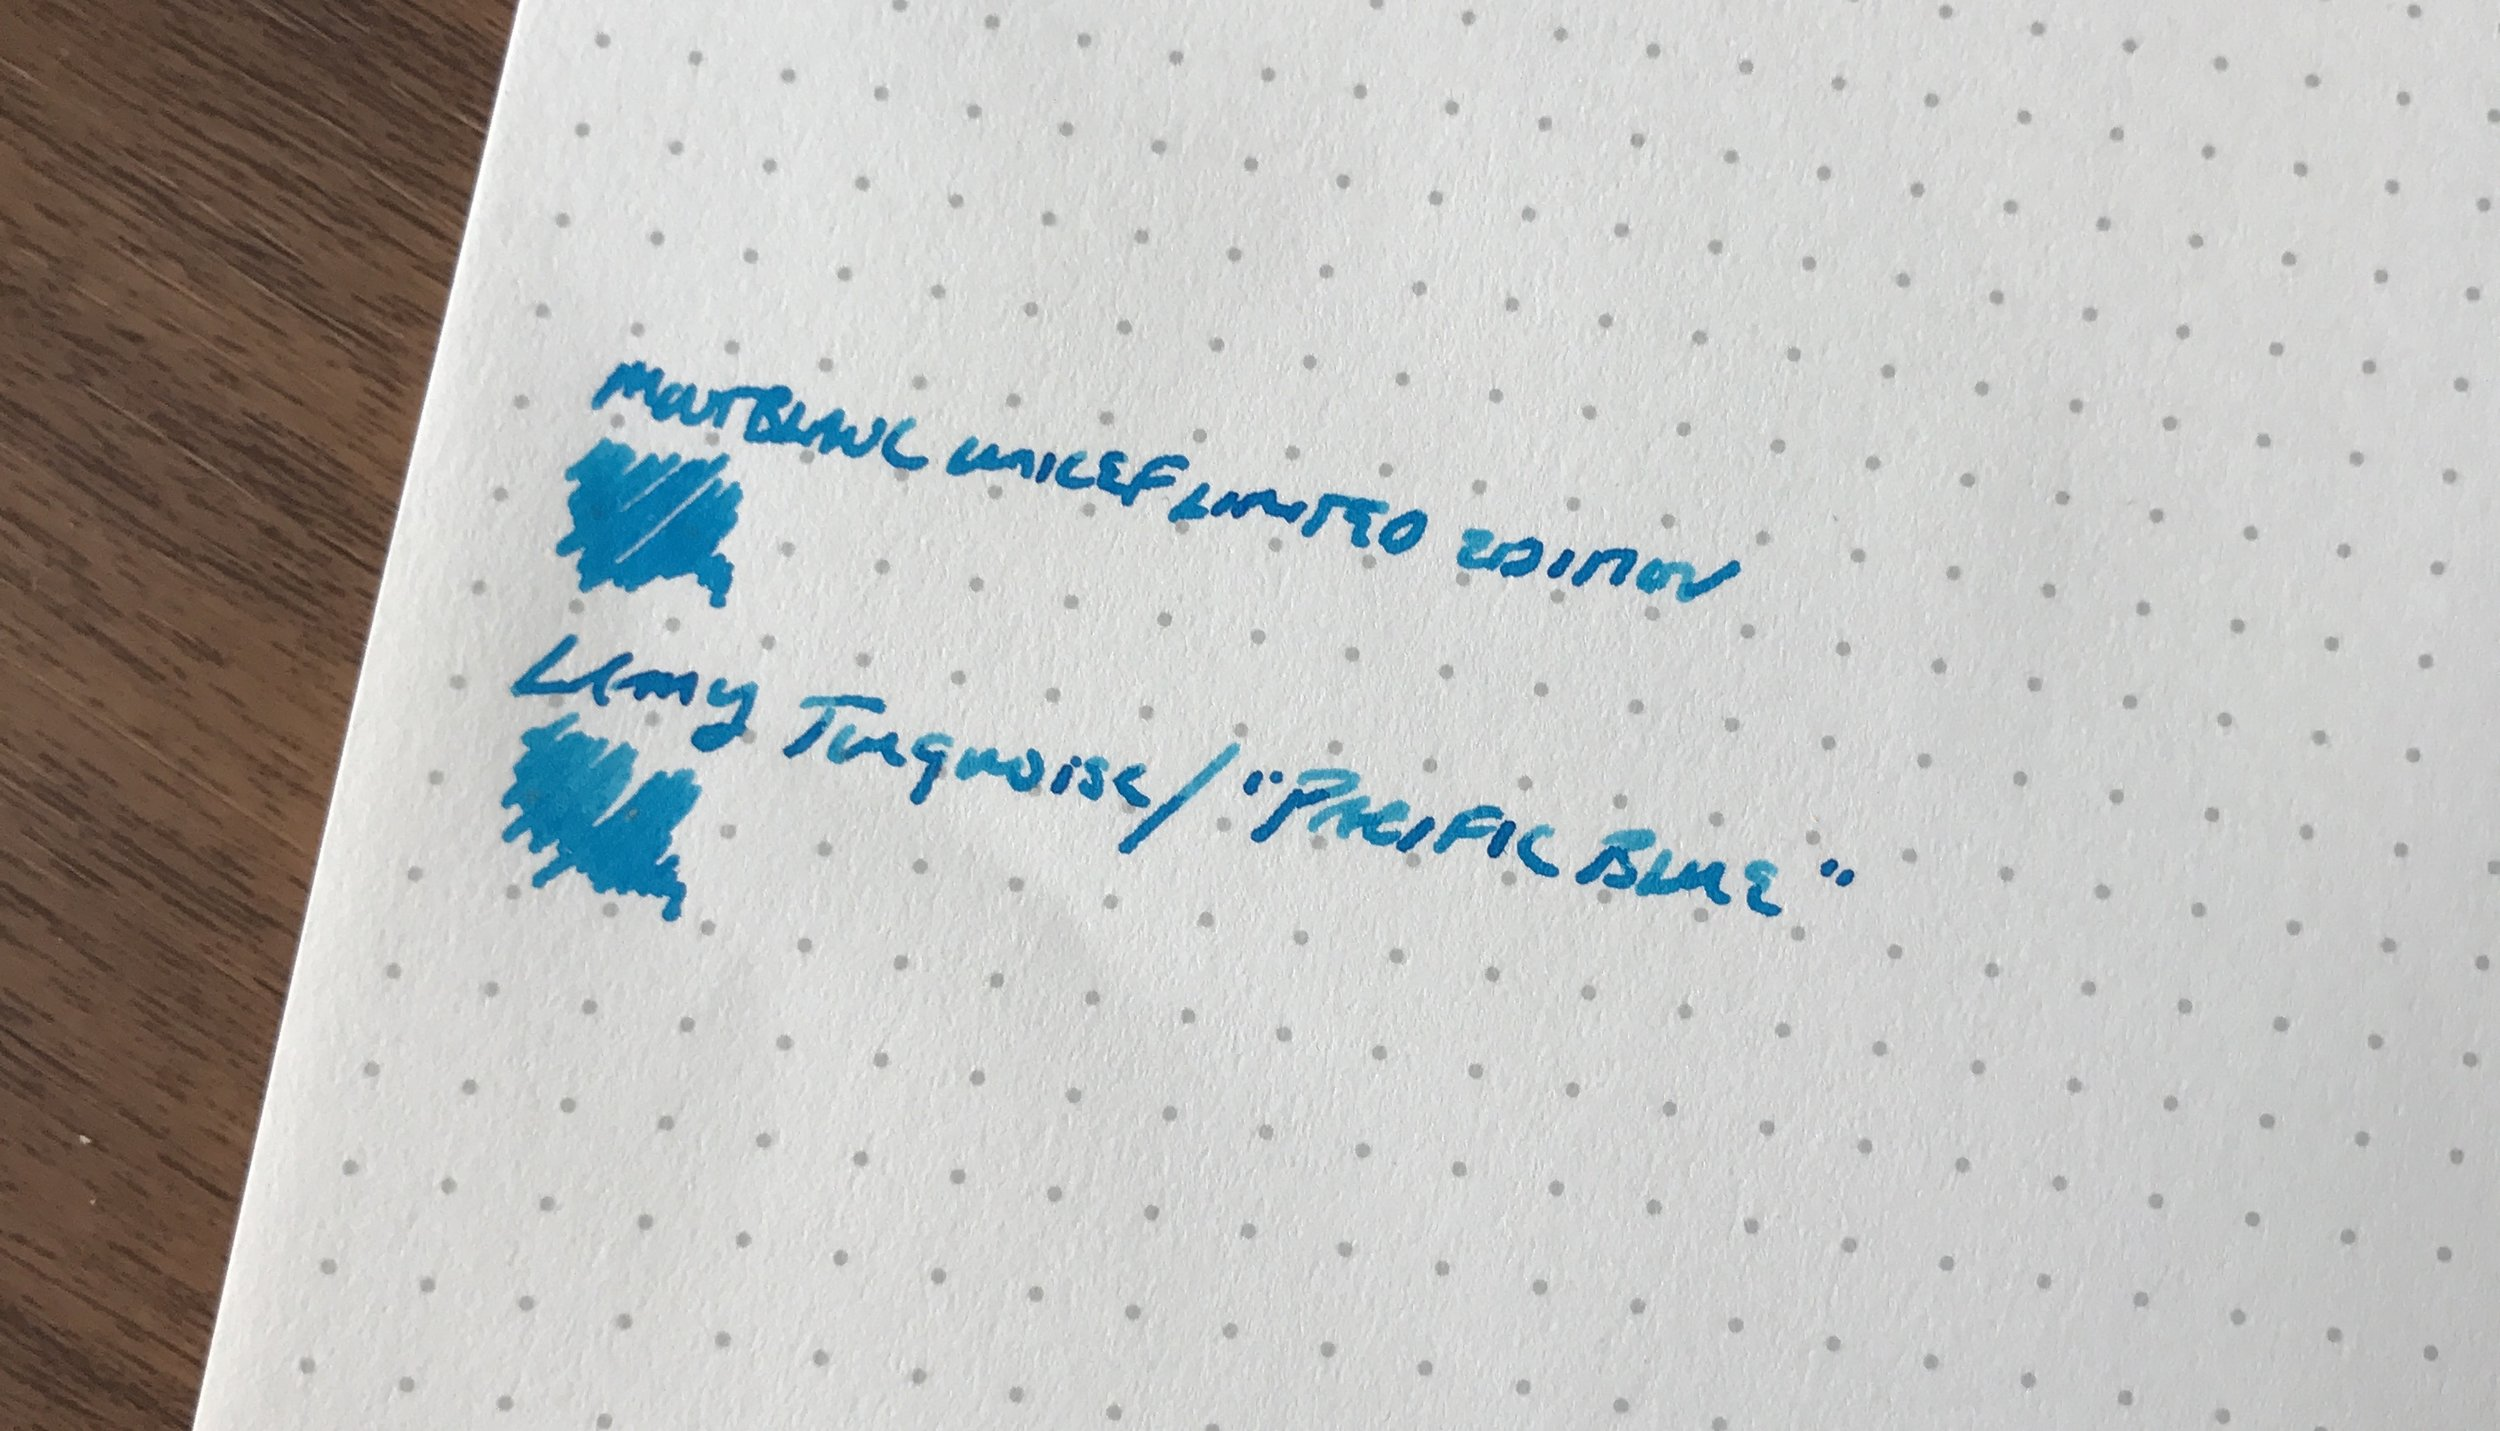 A comparison shot of Lamy Turquoise against the new Montblanc UNICEF Blue. They look very similar, though the Montblanc looks slightly richer and a bit more saturated in person.